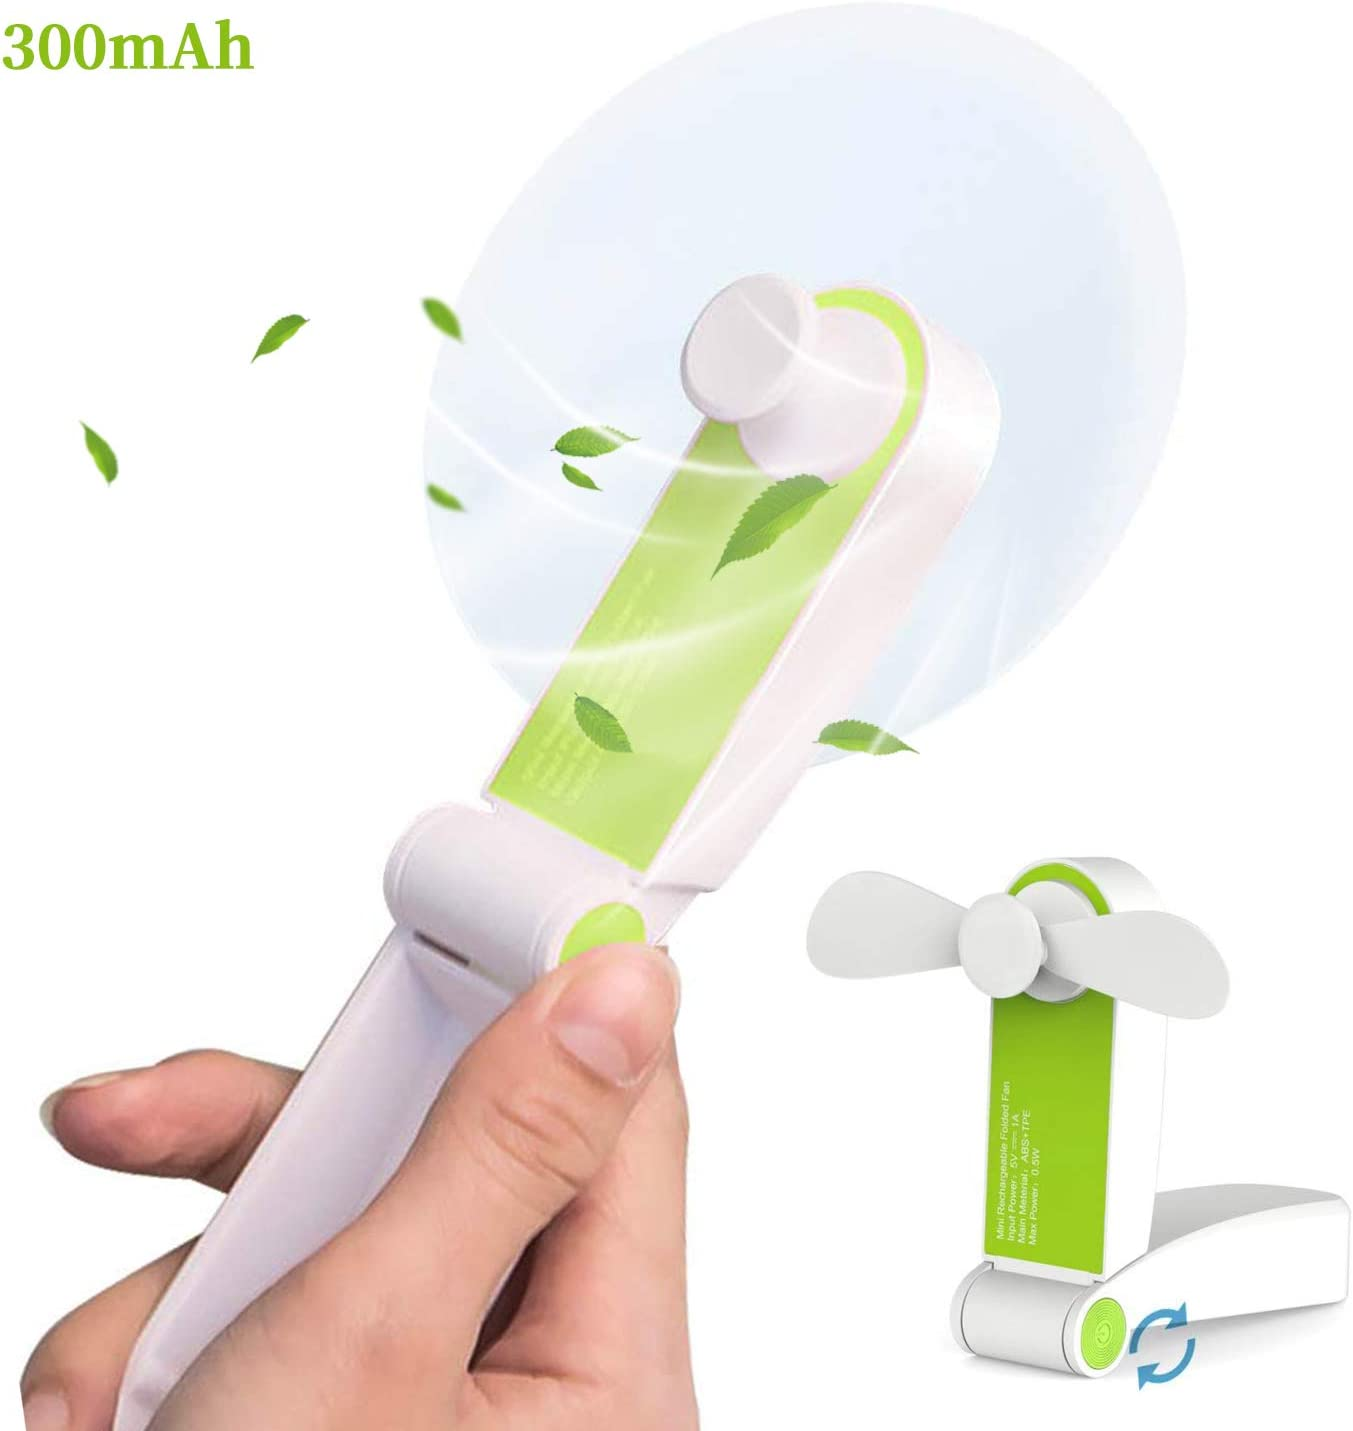 AUDIIOO Mini Handheld Fan USB Rechargeable – Portable Folding Fan Pocket Size Little Fan Lightweight Quiet Personal Fan 2 Adjustable Wind Speed for Office Home Workplace Travel Bus Subway Green